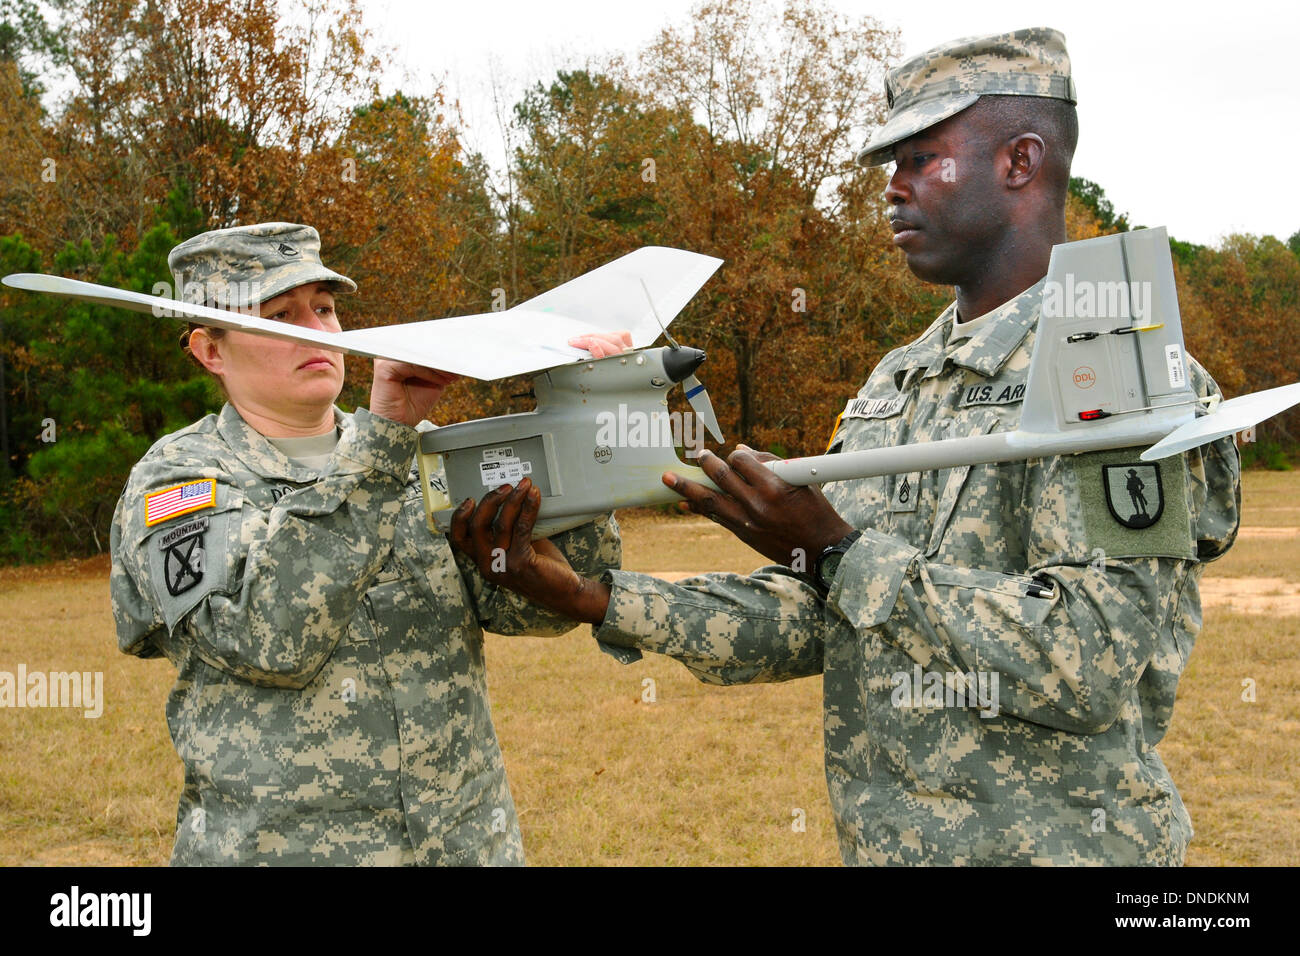 US Army soldiers assemble an RQ-11B Raven unmanned aerial system before an instruction flight at McCrady Training Center November 21, 2013 in Eastover, S.C. - Stock Image